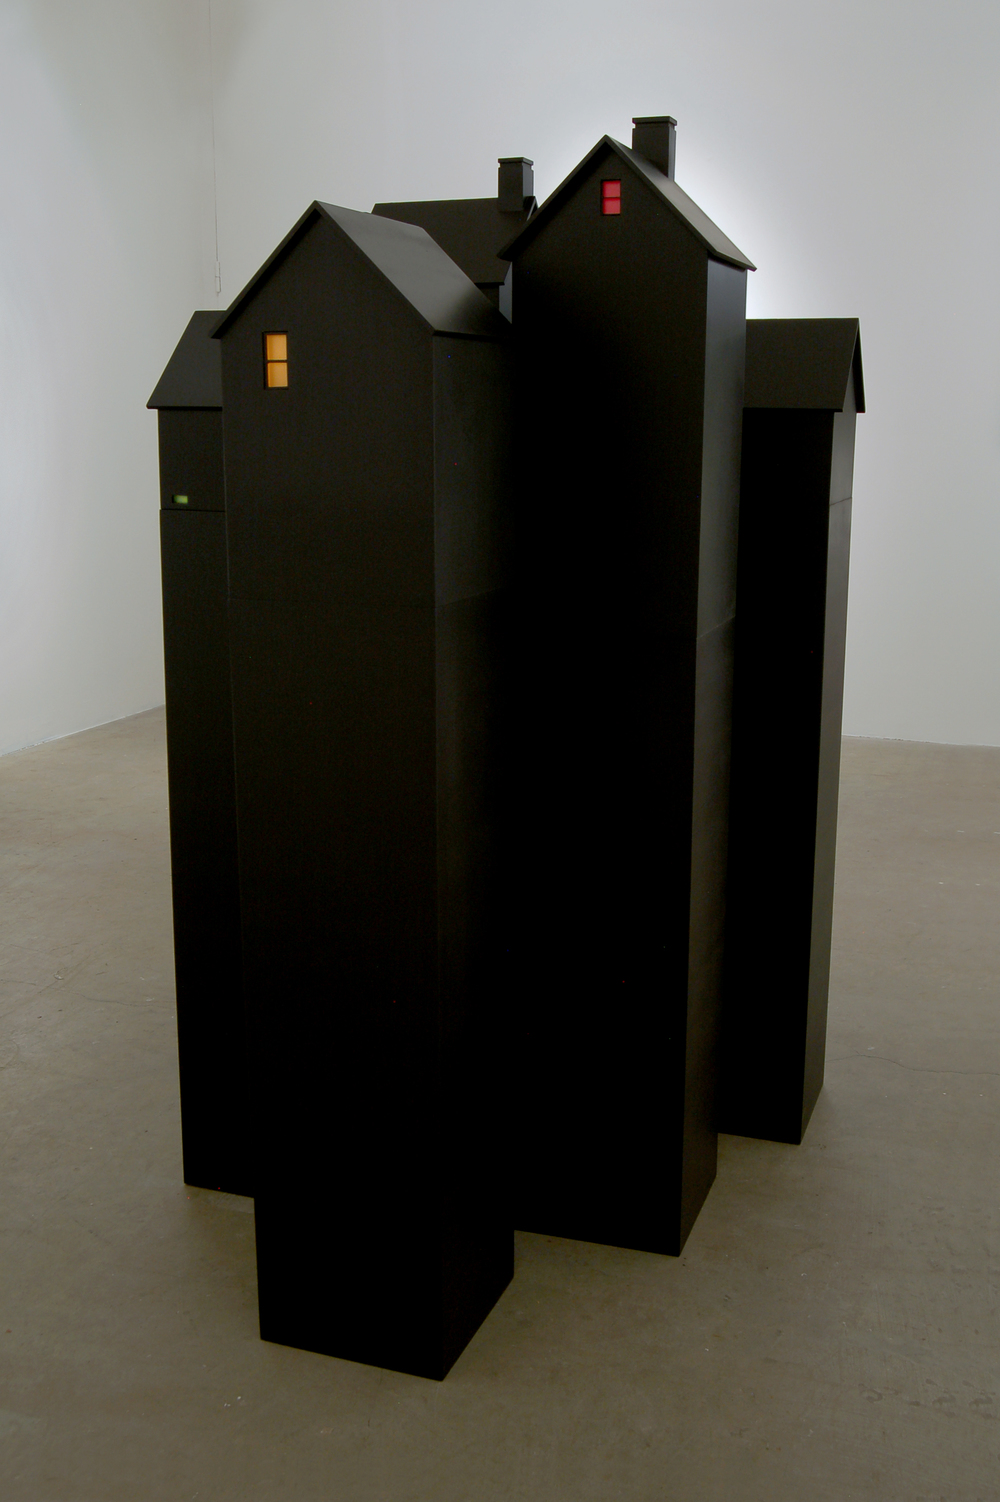 Houses at Night, Installation View